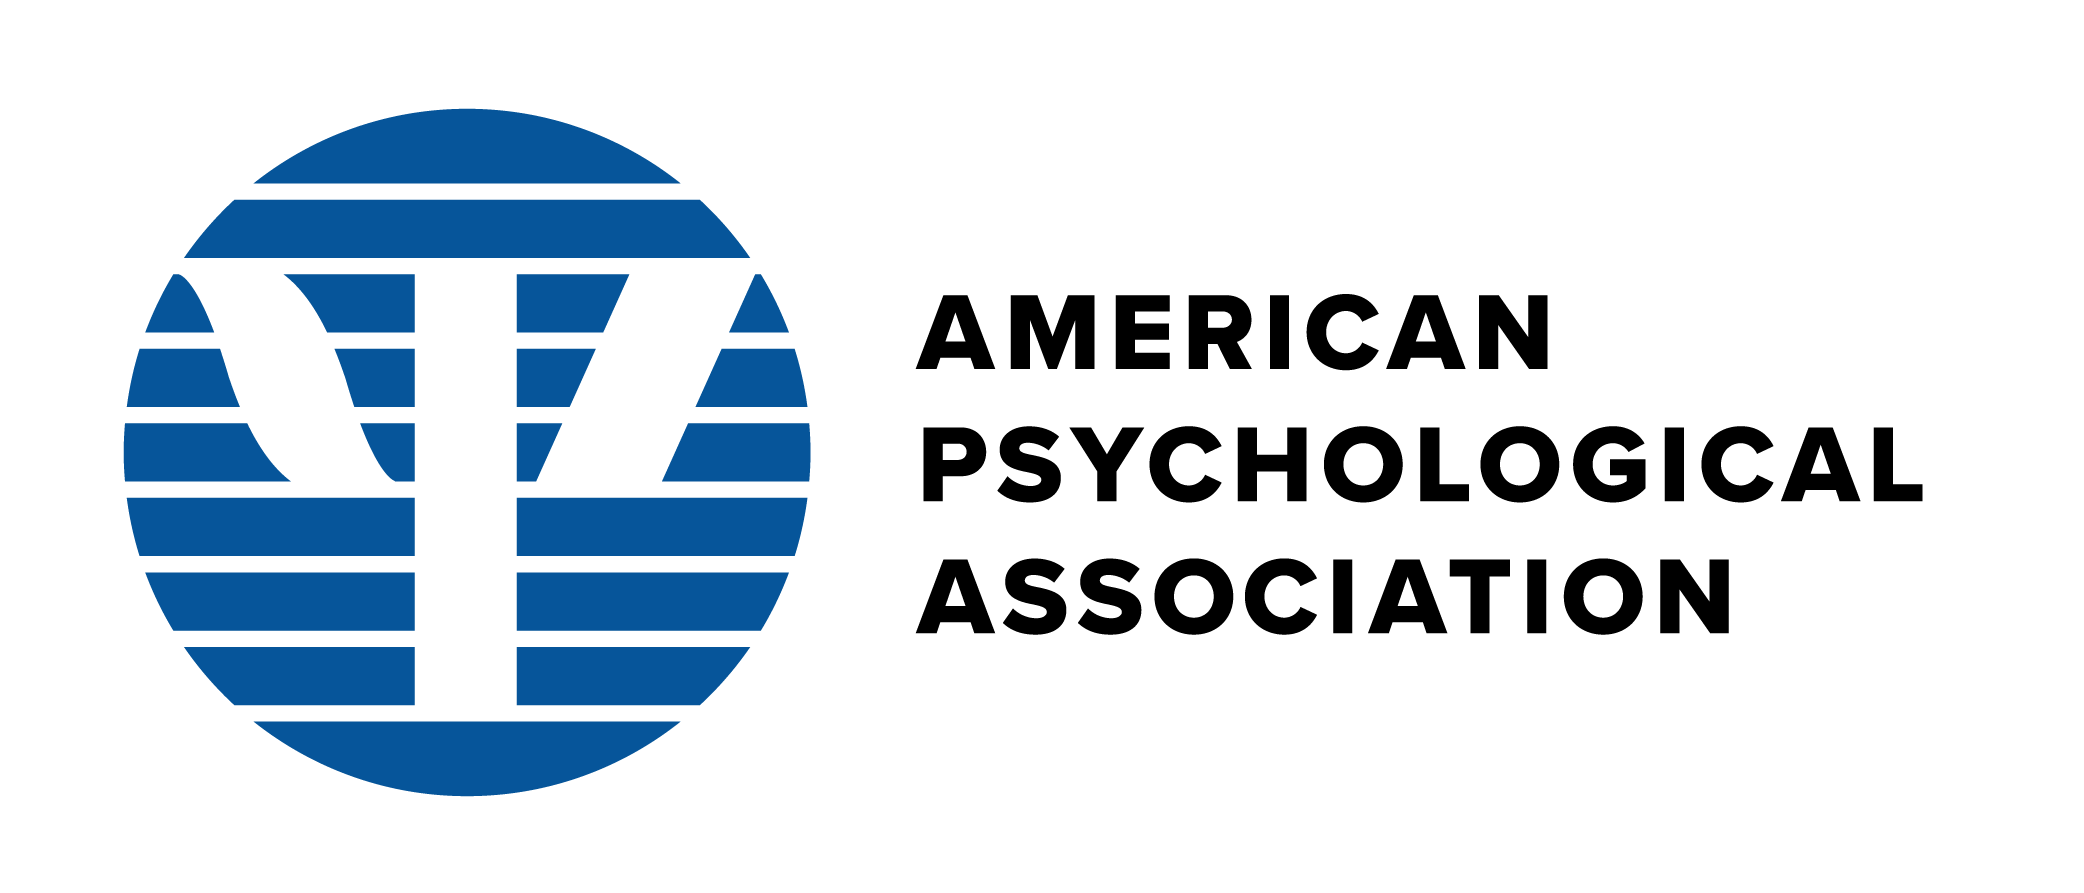 - The American Psychological Association advances the creation, communication, and application of psychological knowledge to benefit society and improve lives. With more than 115,700 researchers, educators, clinicians, consultants, and students as its members, APA is the leading scientific and professional organization representing psychology in the United States